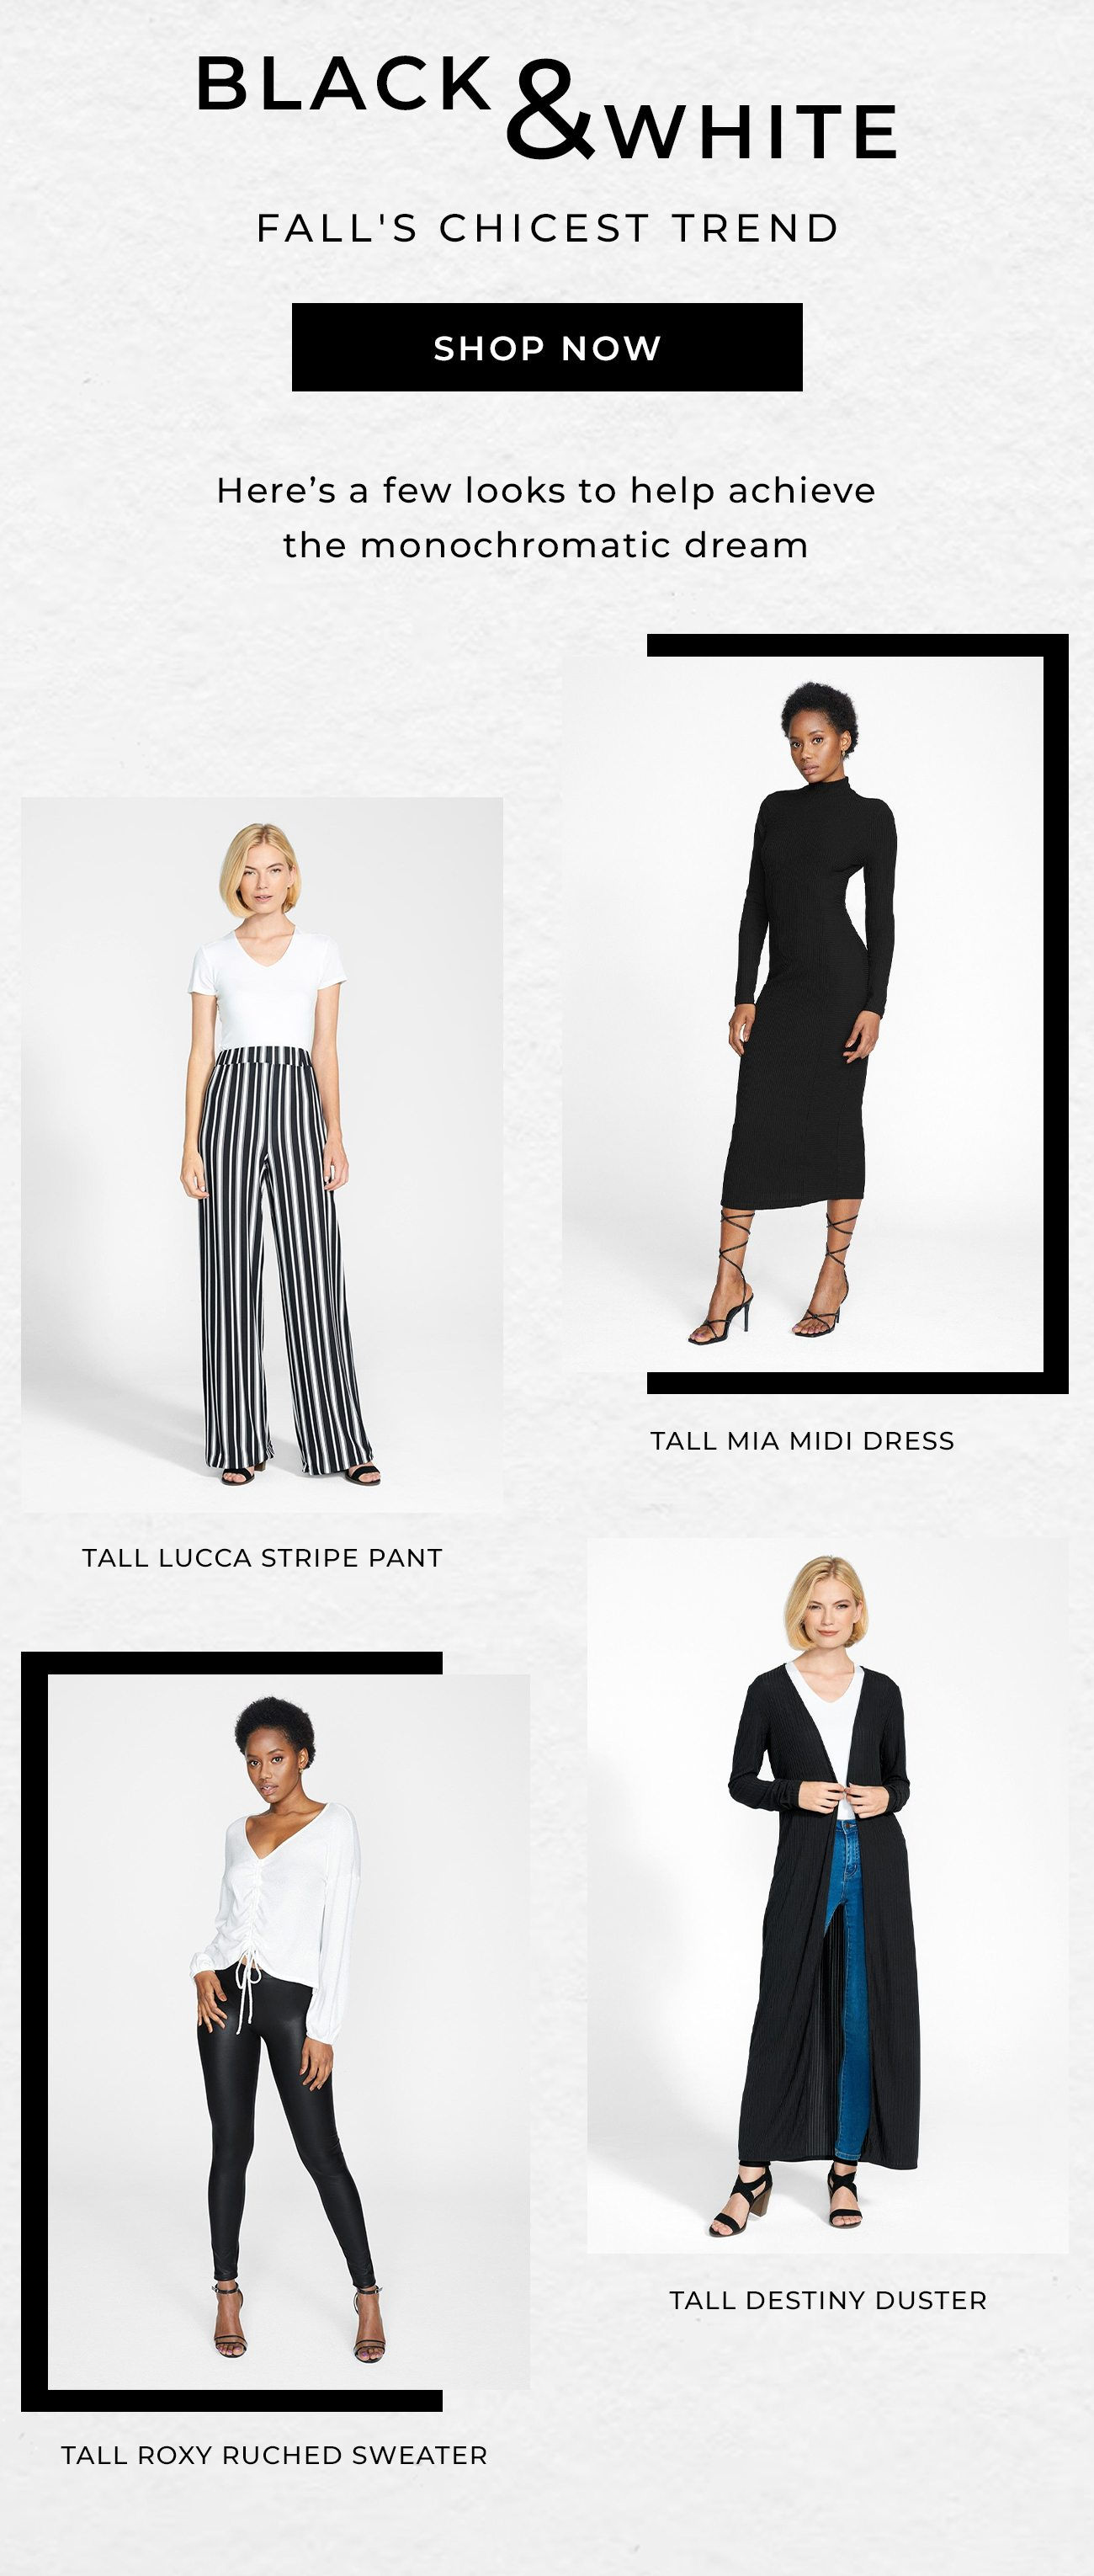 Black & White - Fall's Chicest Trend